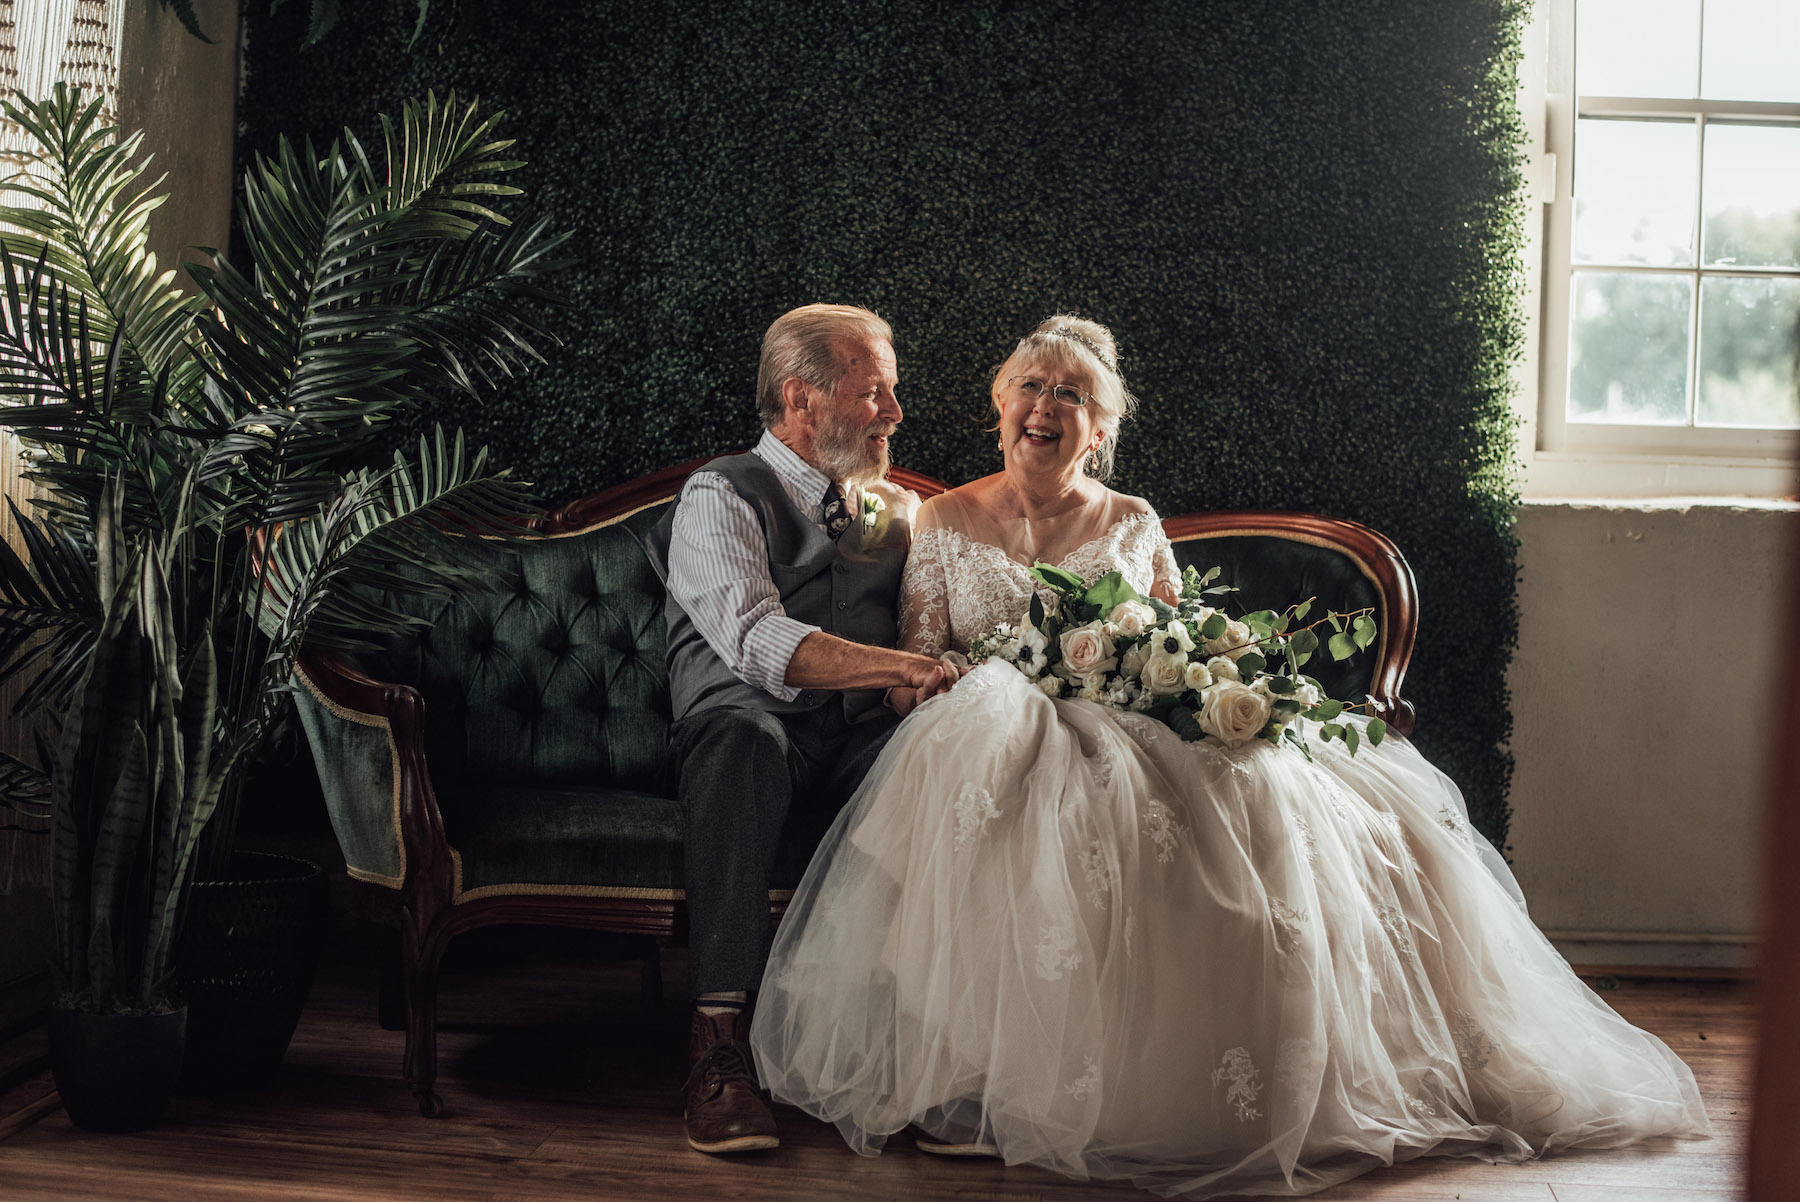 These Adorable Grandparents Recreated Their Wedding Photos 60 Years Later